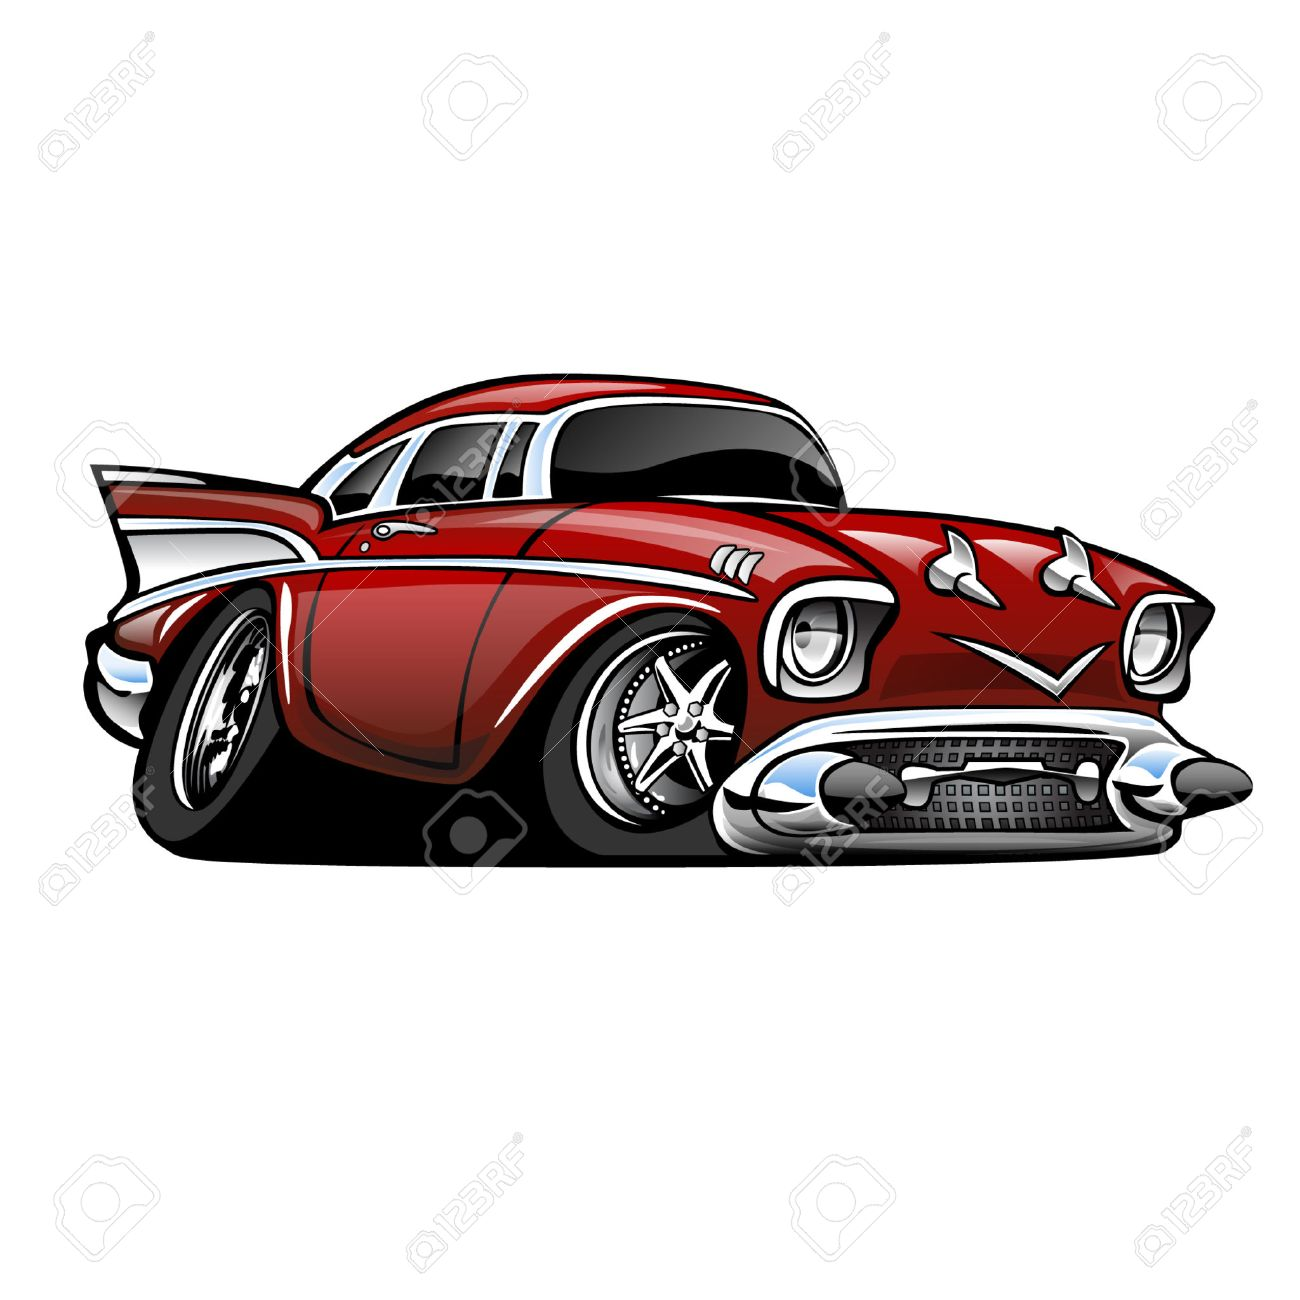 classic muscle car clipart at getdrawings com free for personal rh getdrawings com 57 chevy bel air clipart 57 Chevy Clip Art Silhouettes